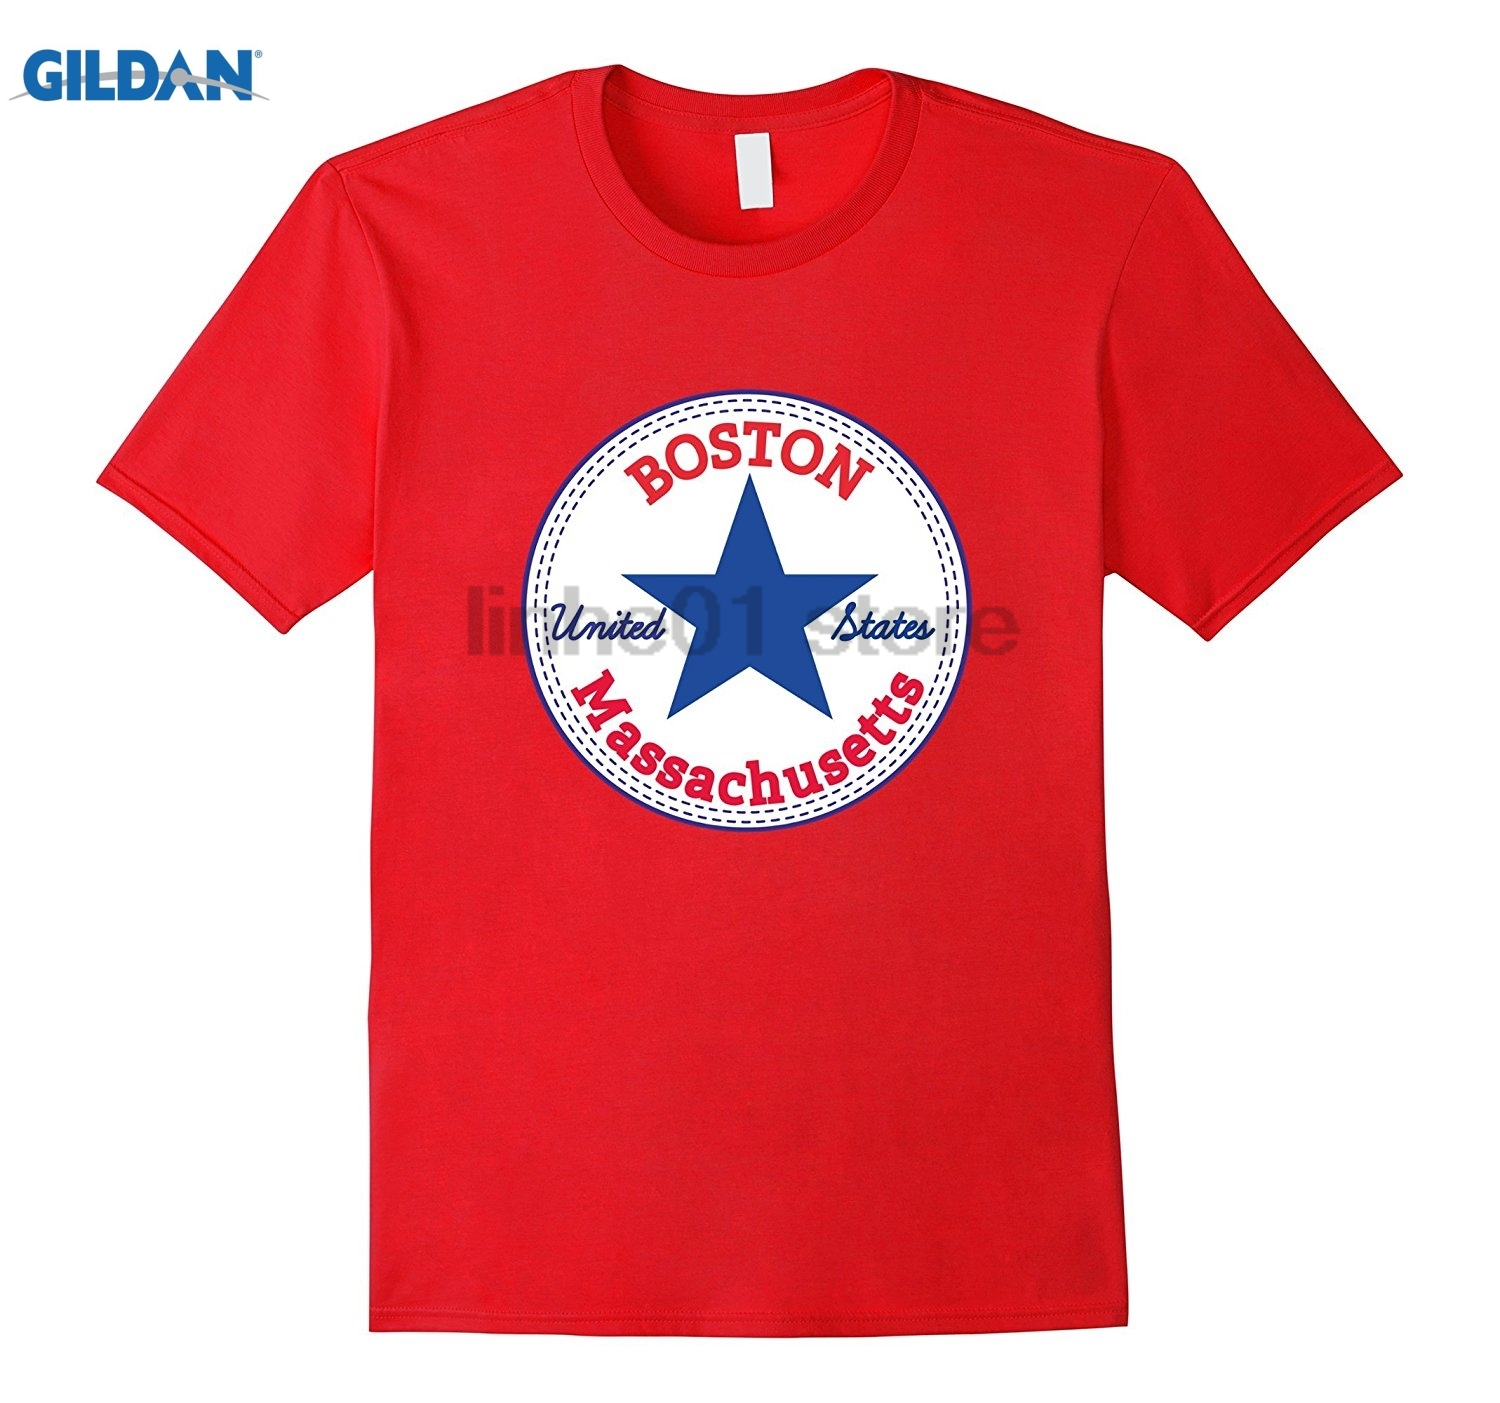 GILDAN BOSTON - MASSACHUSETTS United States USA relaxed fit T-Shirt Hot Womens T-shirt